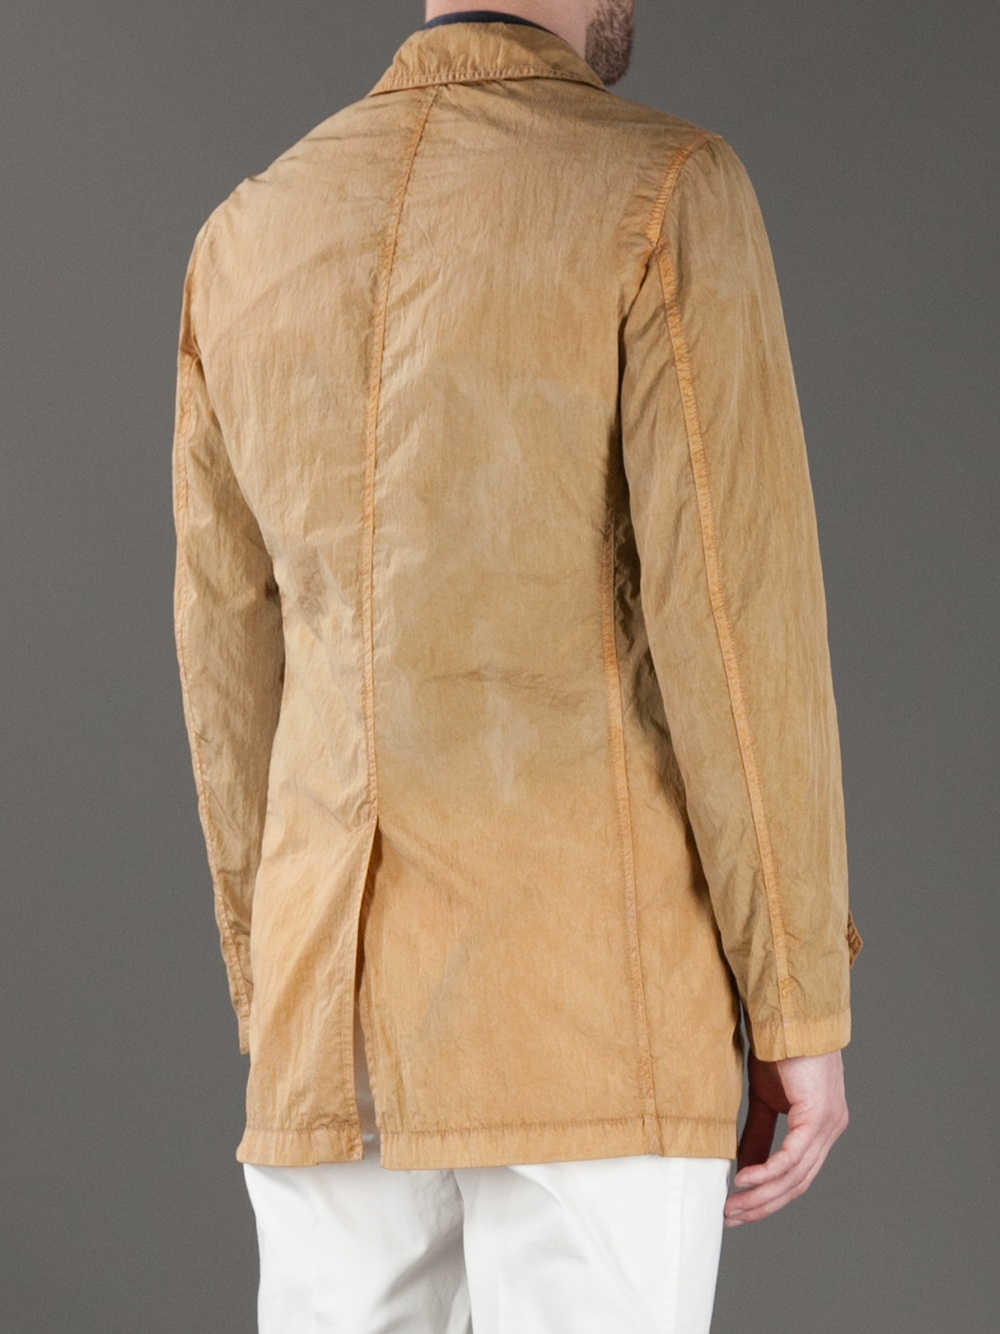 hevo-beige-trench-coat-product-1-12742231-1-800346199-normal.jpeg